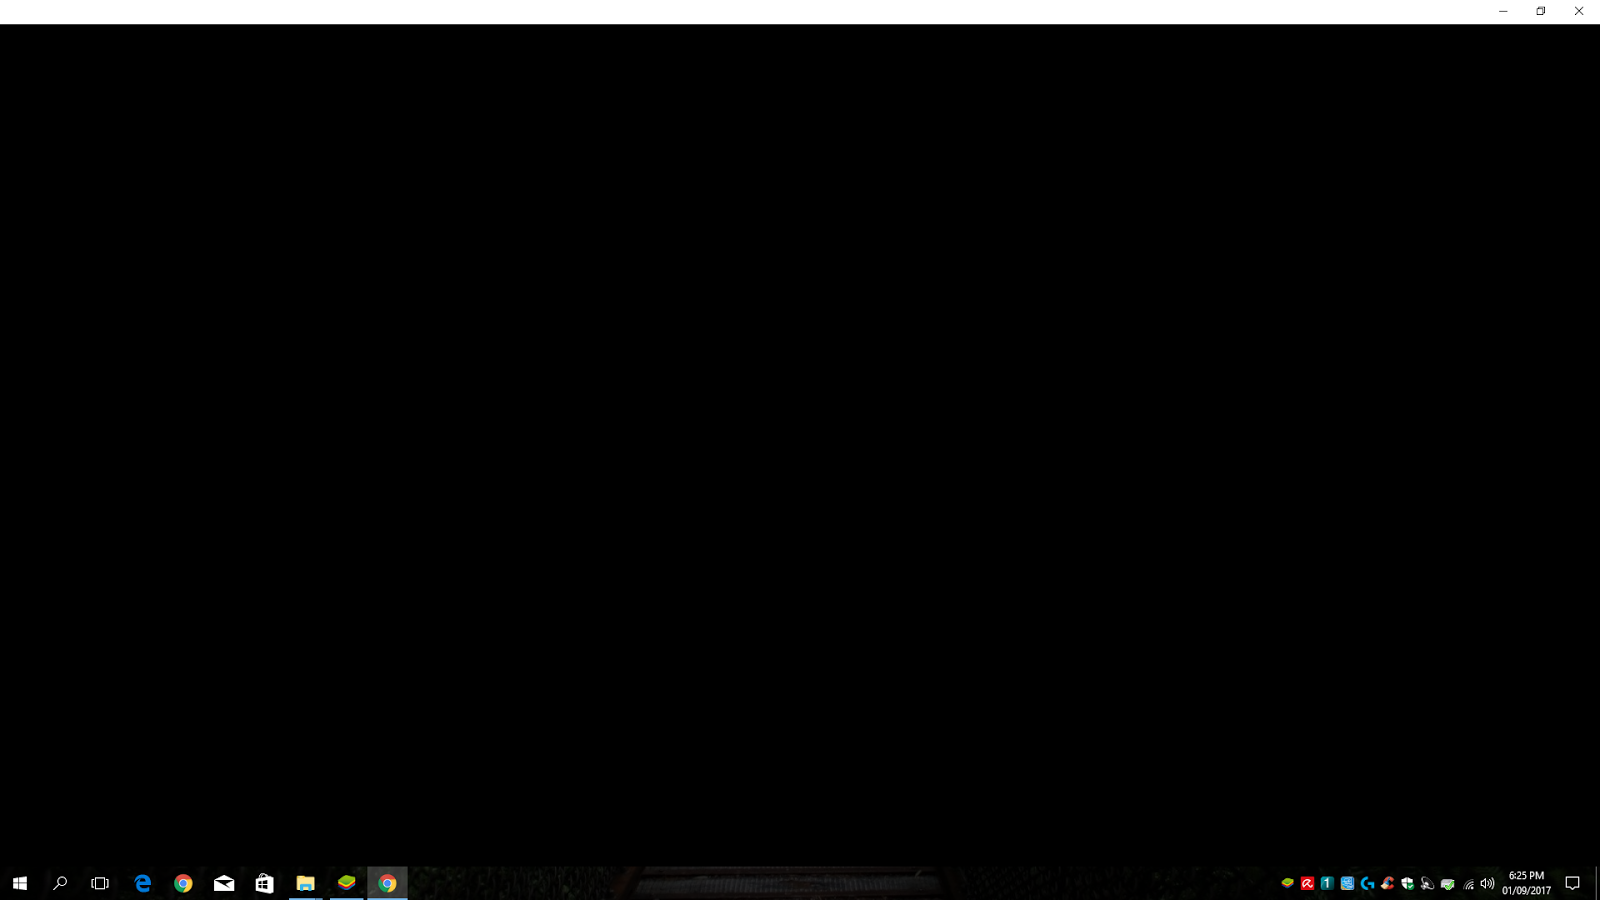 Black screen when opening back Chrome from task bar (minimized